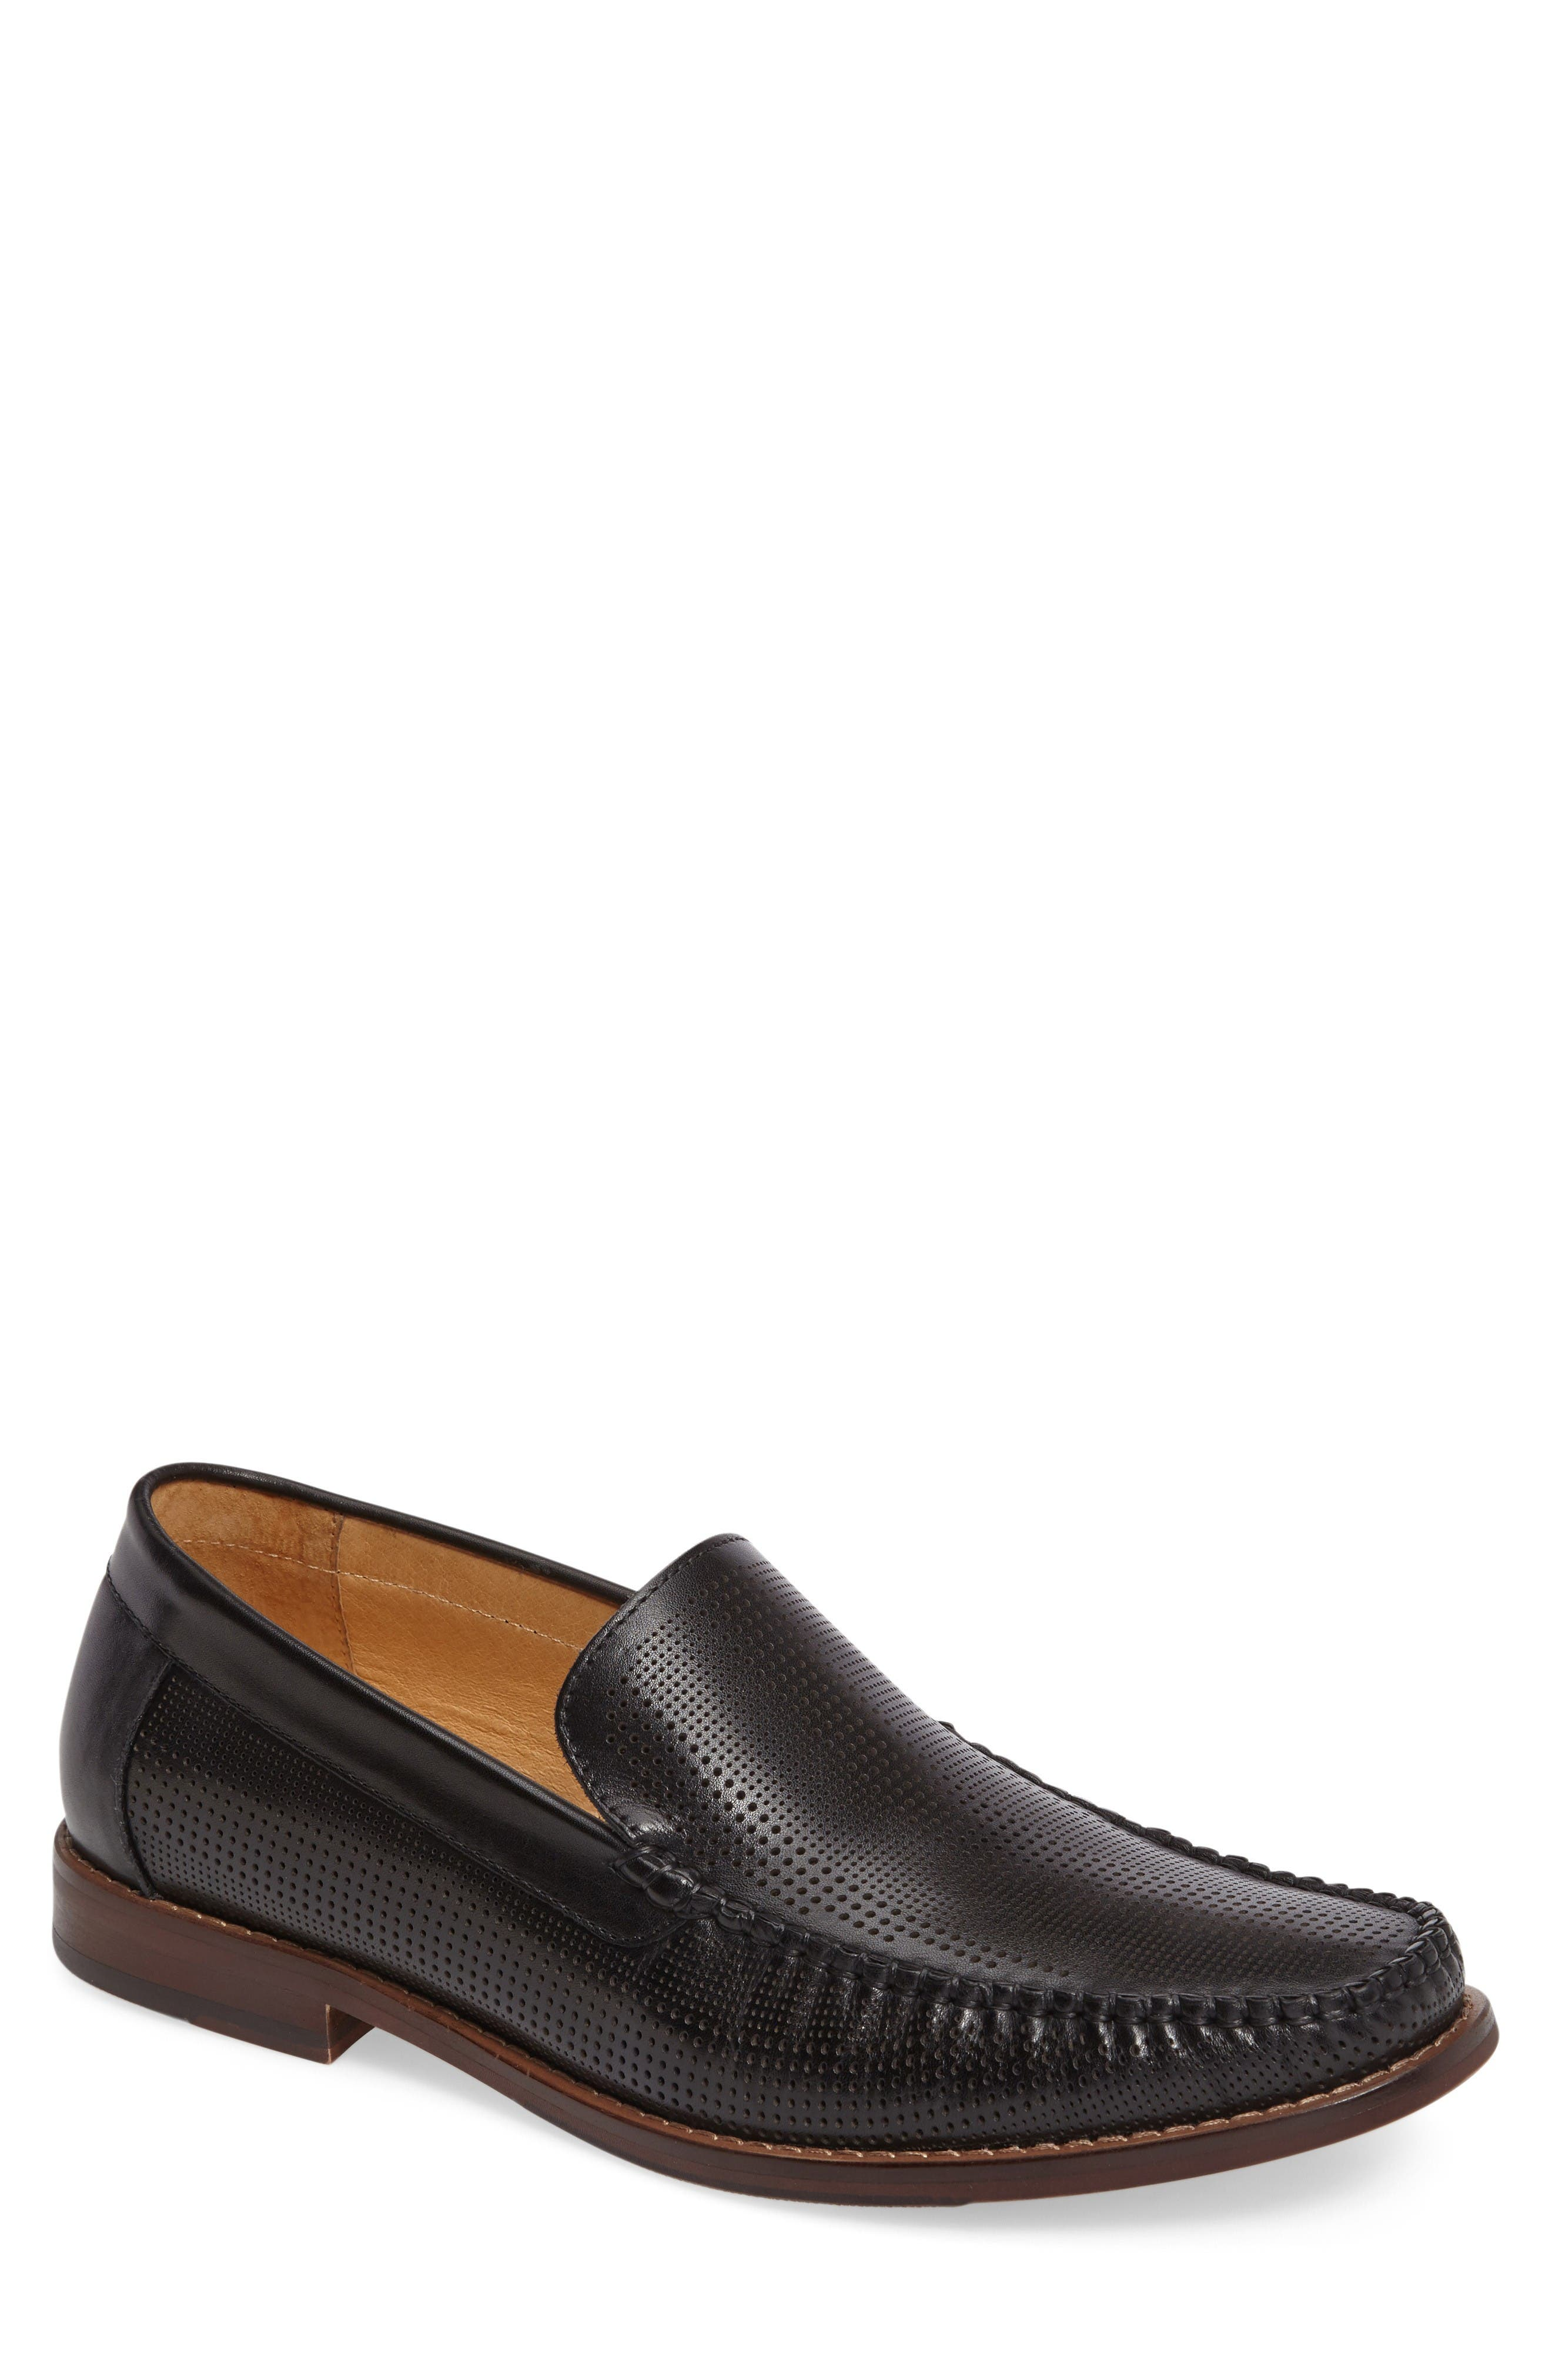 Kenneth Cole New York In the Media Loafer (Men)